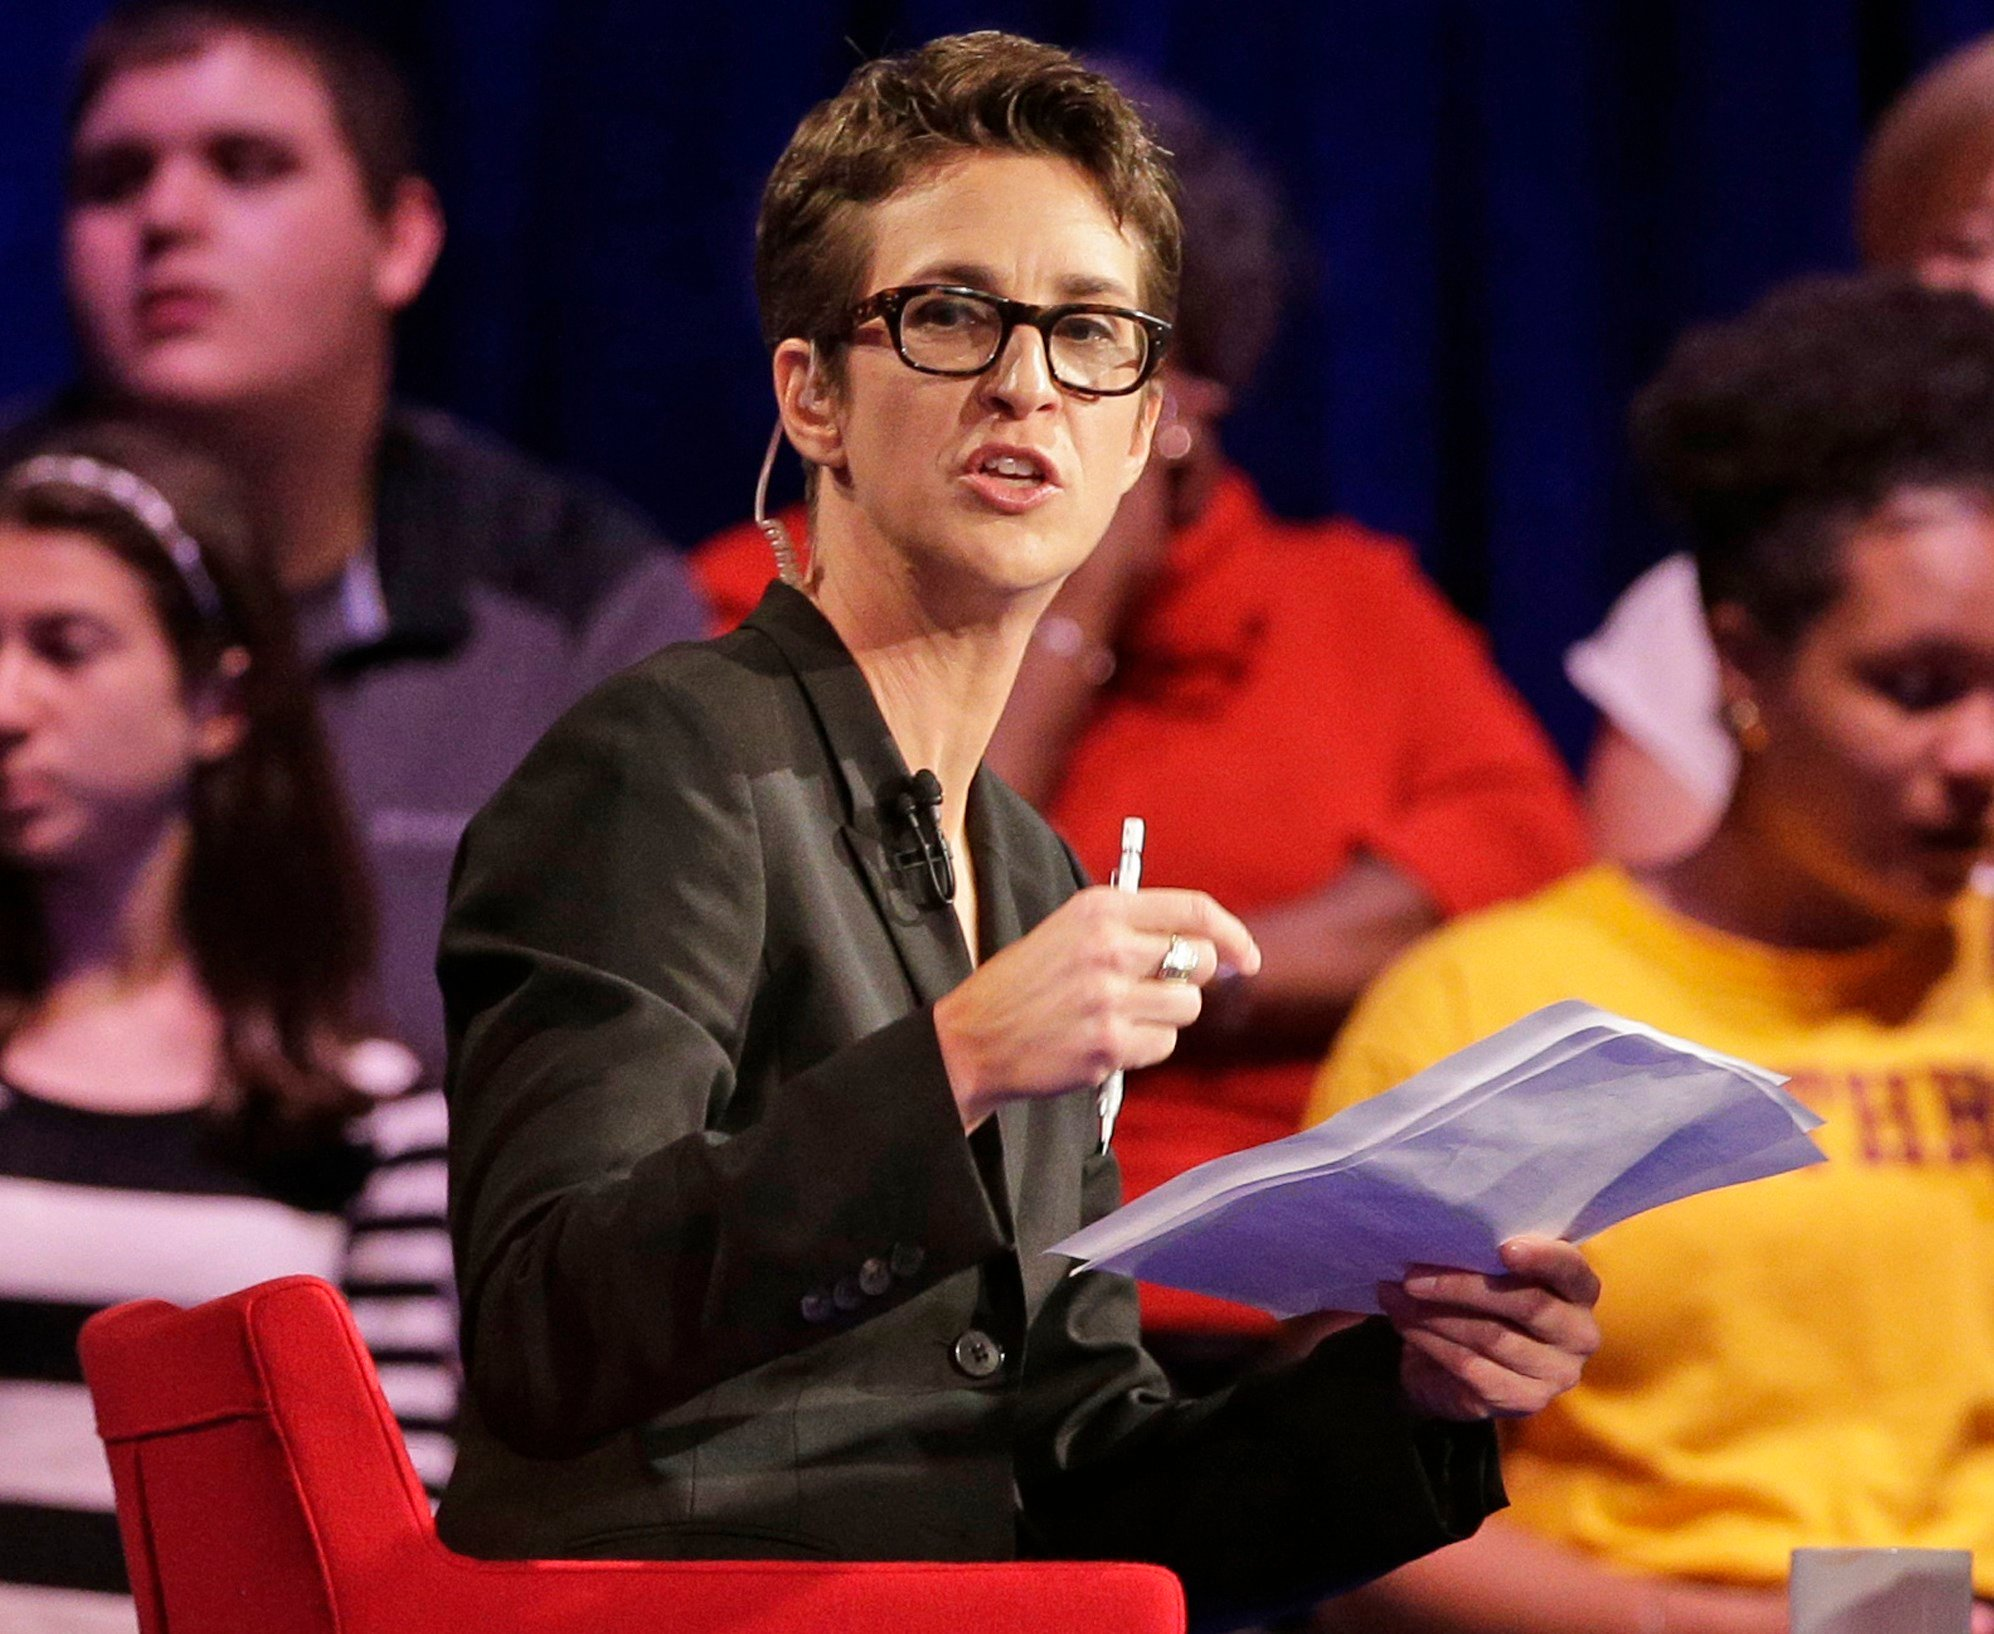 In this Friday, Nov. 6, 2015, file photo, MSNBC's Rachel Maddow speaks during a Democratic presidential candidate forum at Winthrop University in Rock Hill, S.C. Maddow is hosting a special televised town hall meeting from Flint, Mich. (AP Images)